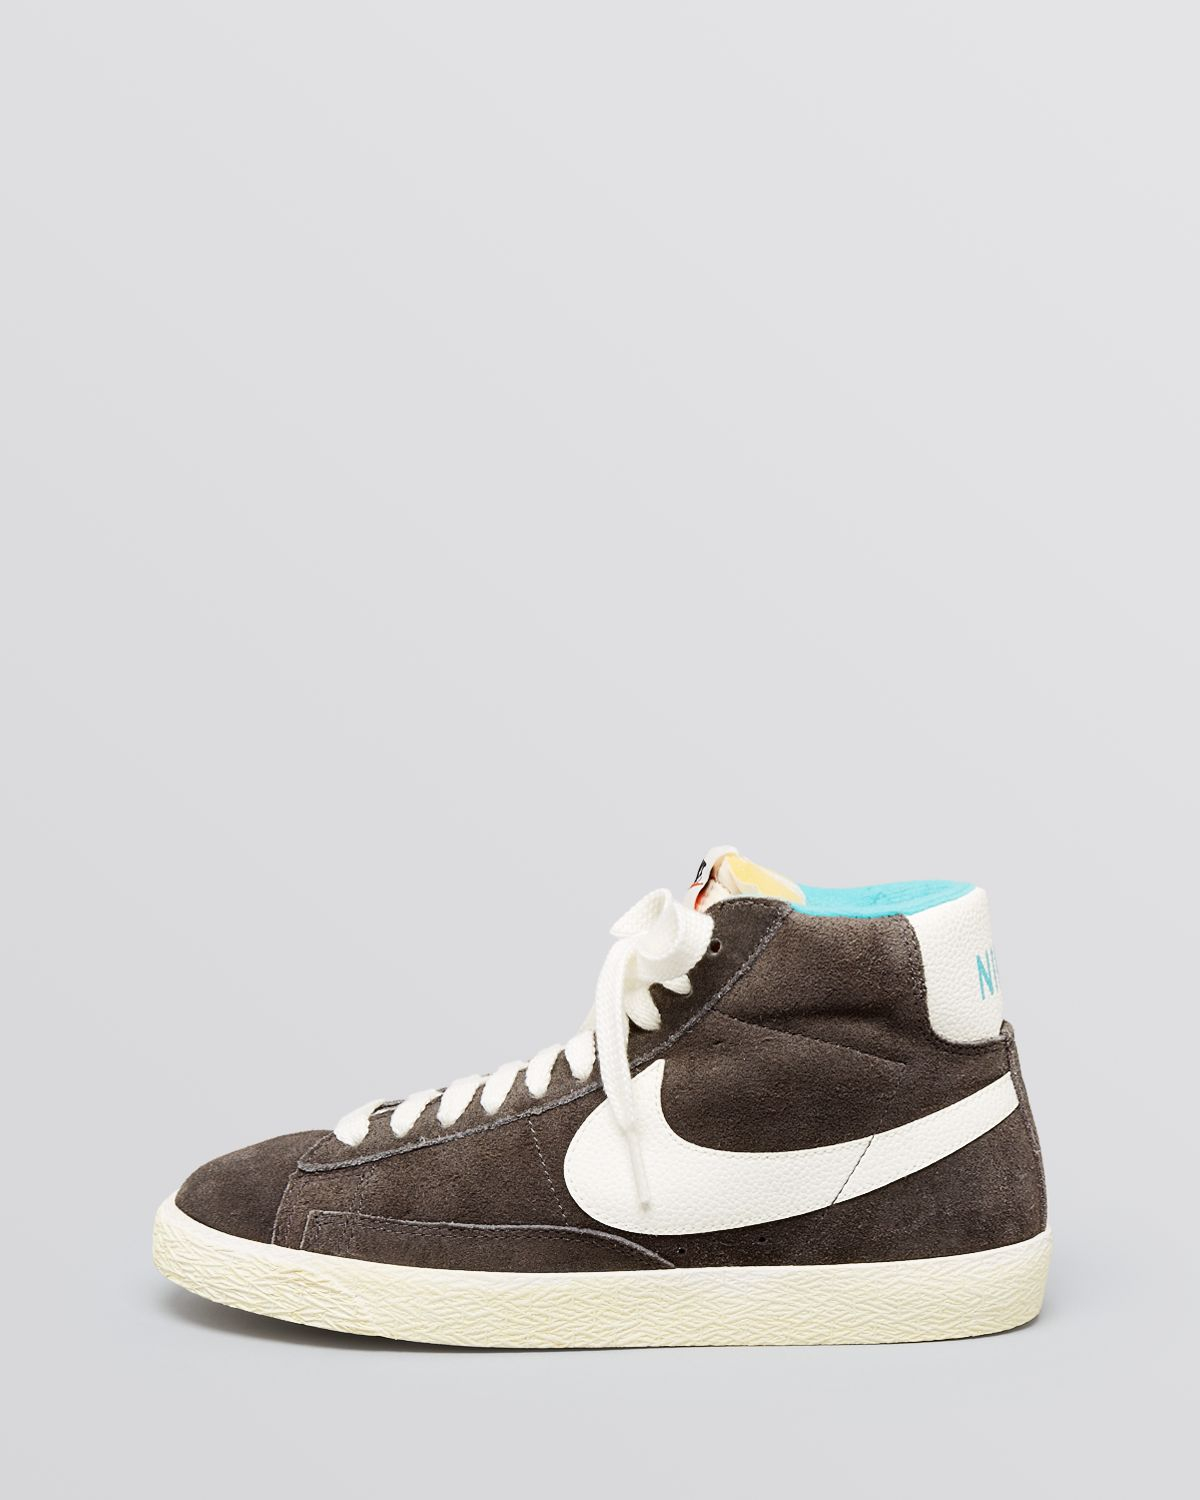 nike blazer mid leather vintage ladies hi-tops